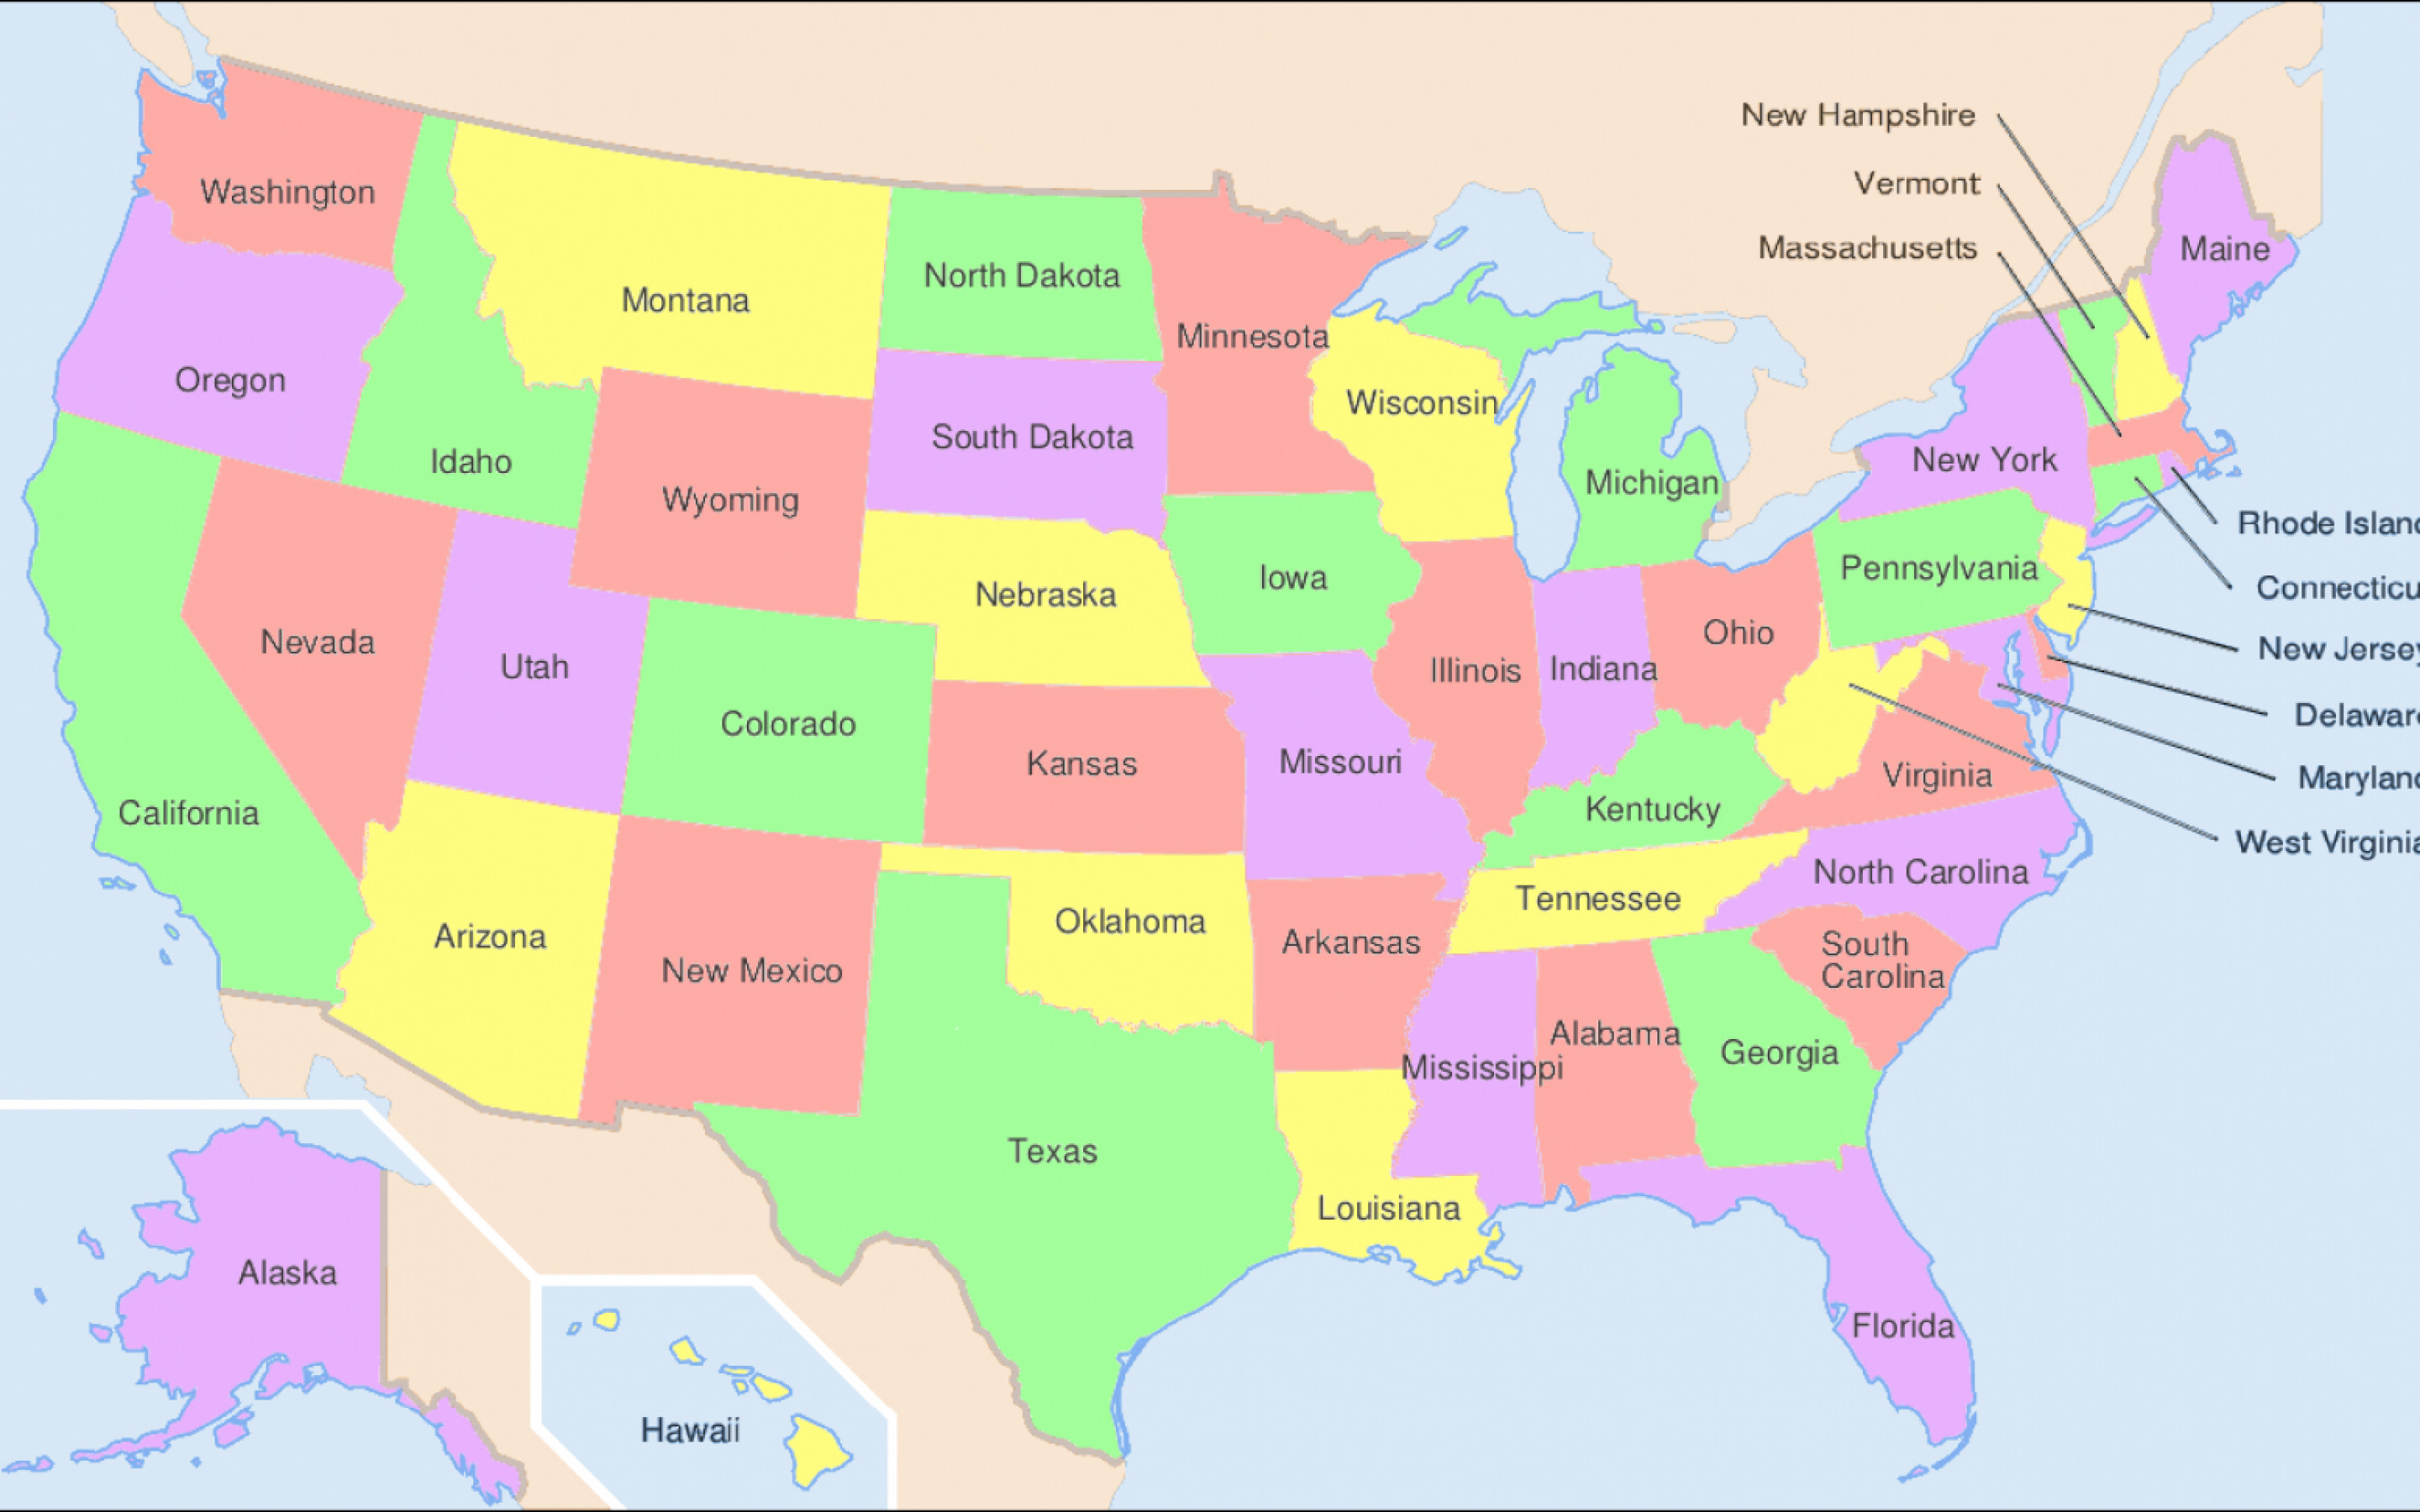 2880x1800 Usa Map United States Pictures 4129577 With Resolutions 28801800